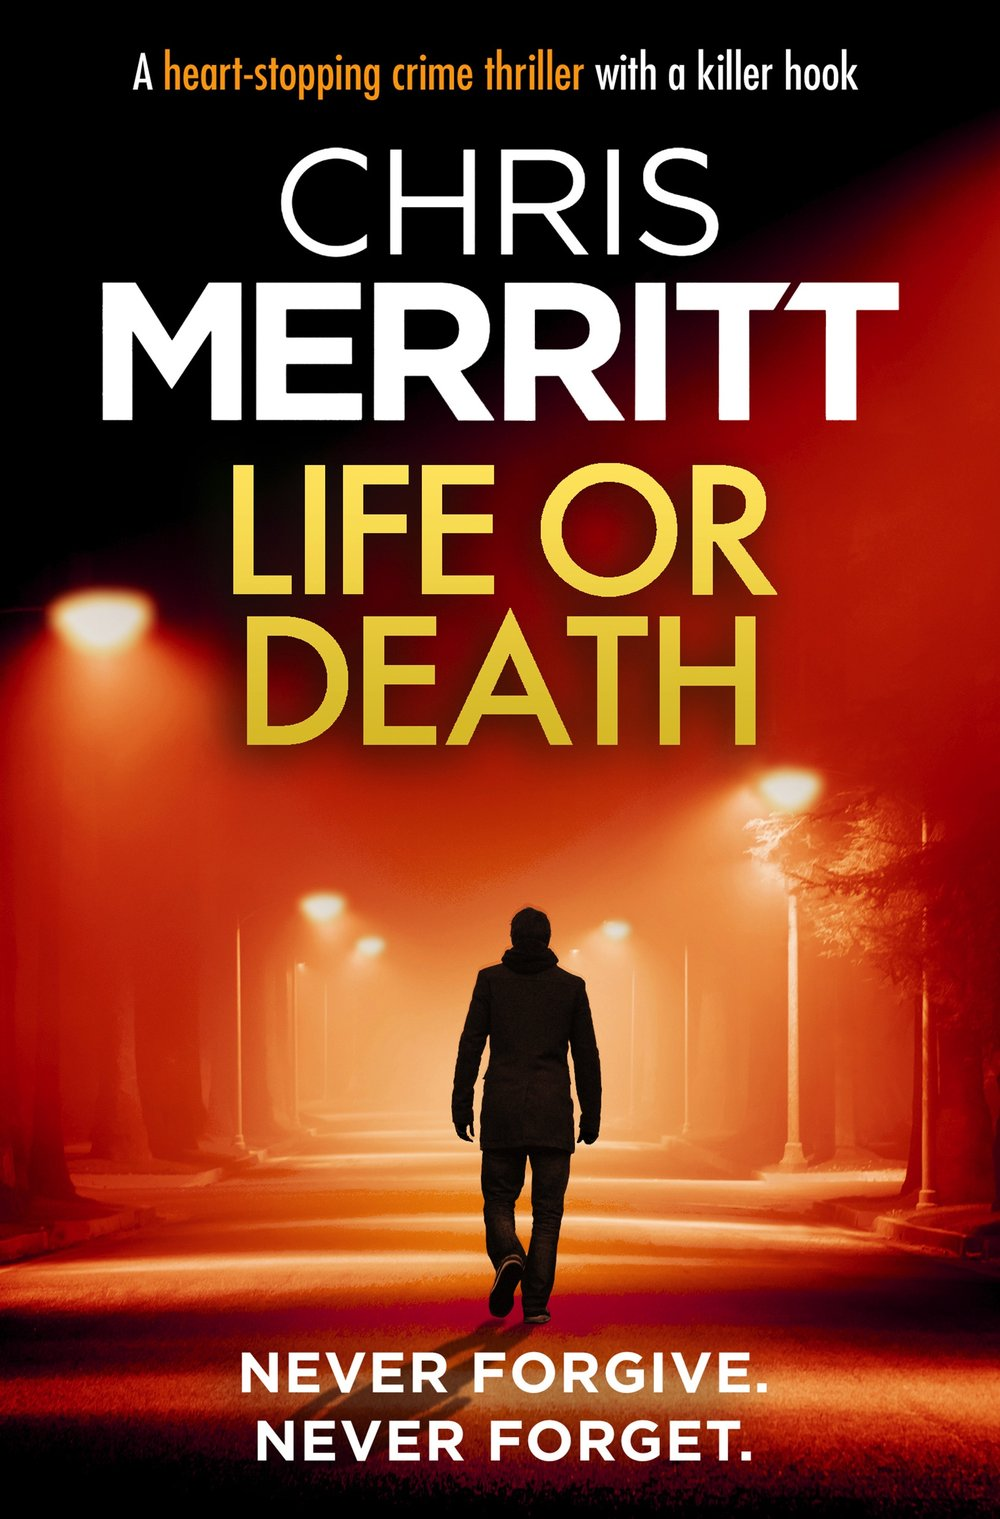 LIFE OR DEATH - DI Zac Boateng book 3Never forget. Never forgive.As a detective in the Metropolitan police, Zac is no stranger to murder cases, but this one is different. This is his daughter's murder. Years after Amelia died, Zac is still trying to trace the police officer involved in his daughter's death.And whilst Zac is prepared to break every rule to find the man responsible, his young and ambitious deputy, Kat, is working on a high-profile case of her own. But she knows Zac is keeping secrets from his team so she's following his every move.When one of Zac's informants is killed, he knows he's close to catching his man, but before he can act, he receives a call about his son which blows his world apart… And this time, he knows he'll stop at nothing to save his family.Out 23rd January 2019Available to pre-order now on ebook or print-on-demand:Amazon: http://geni.us/LodCoveriBookstore: https://tinyurl.com/y7vqjoa6Kobo: https://tinyurl.com/y8floql8Googleplay: https://tinyurl.com/yawpggg8